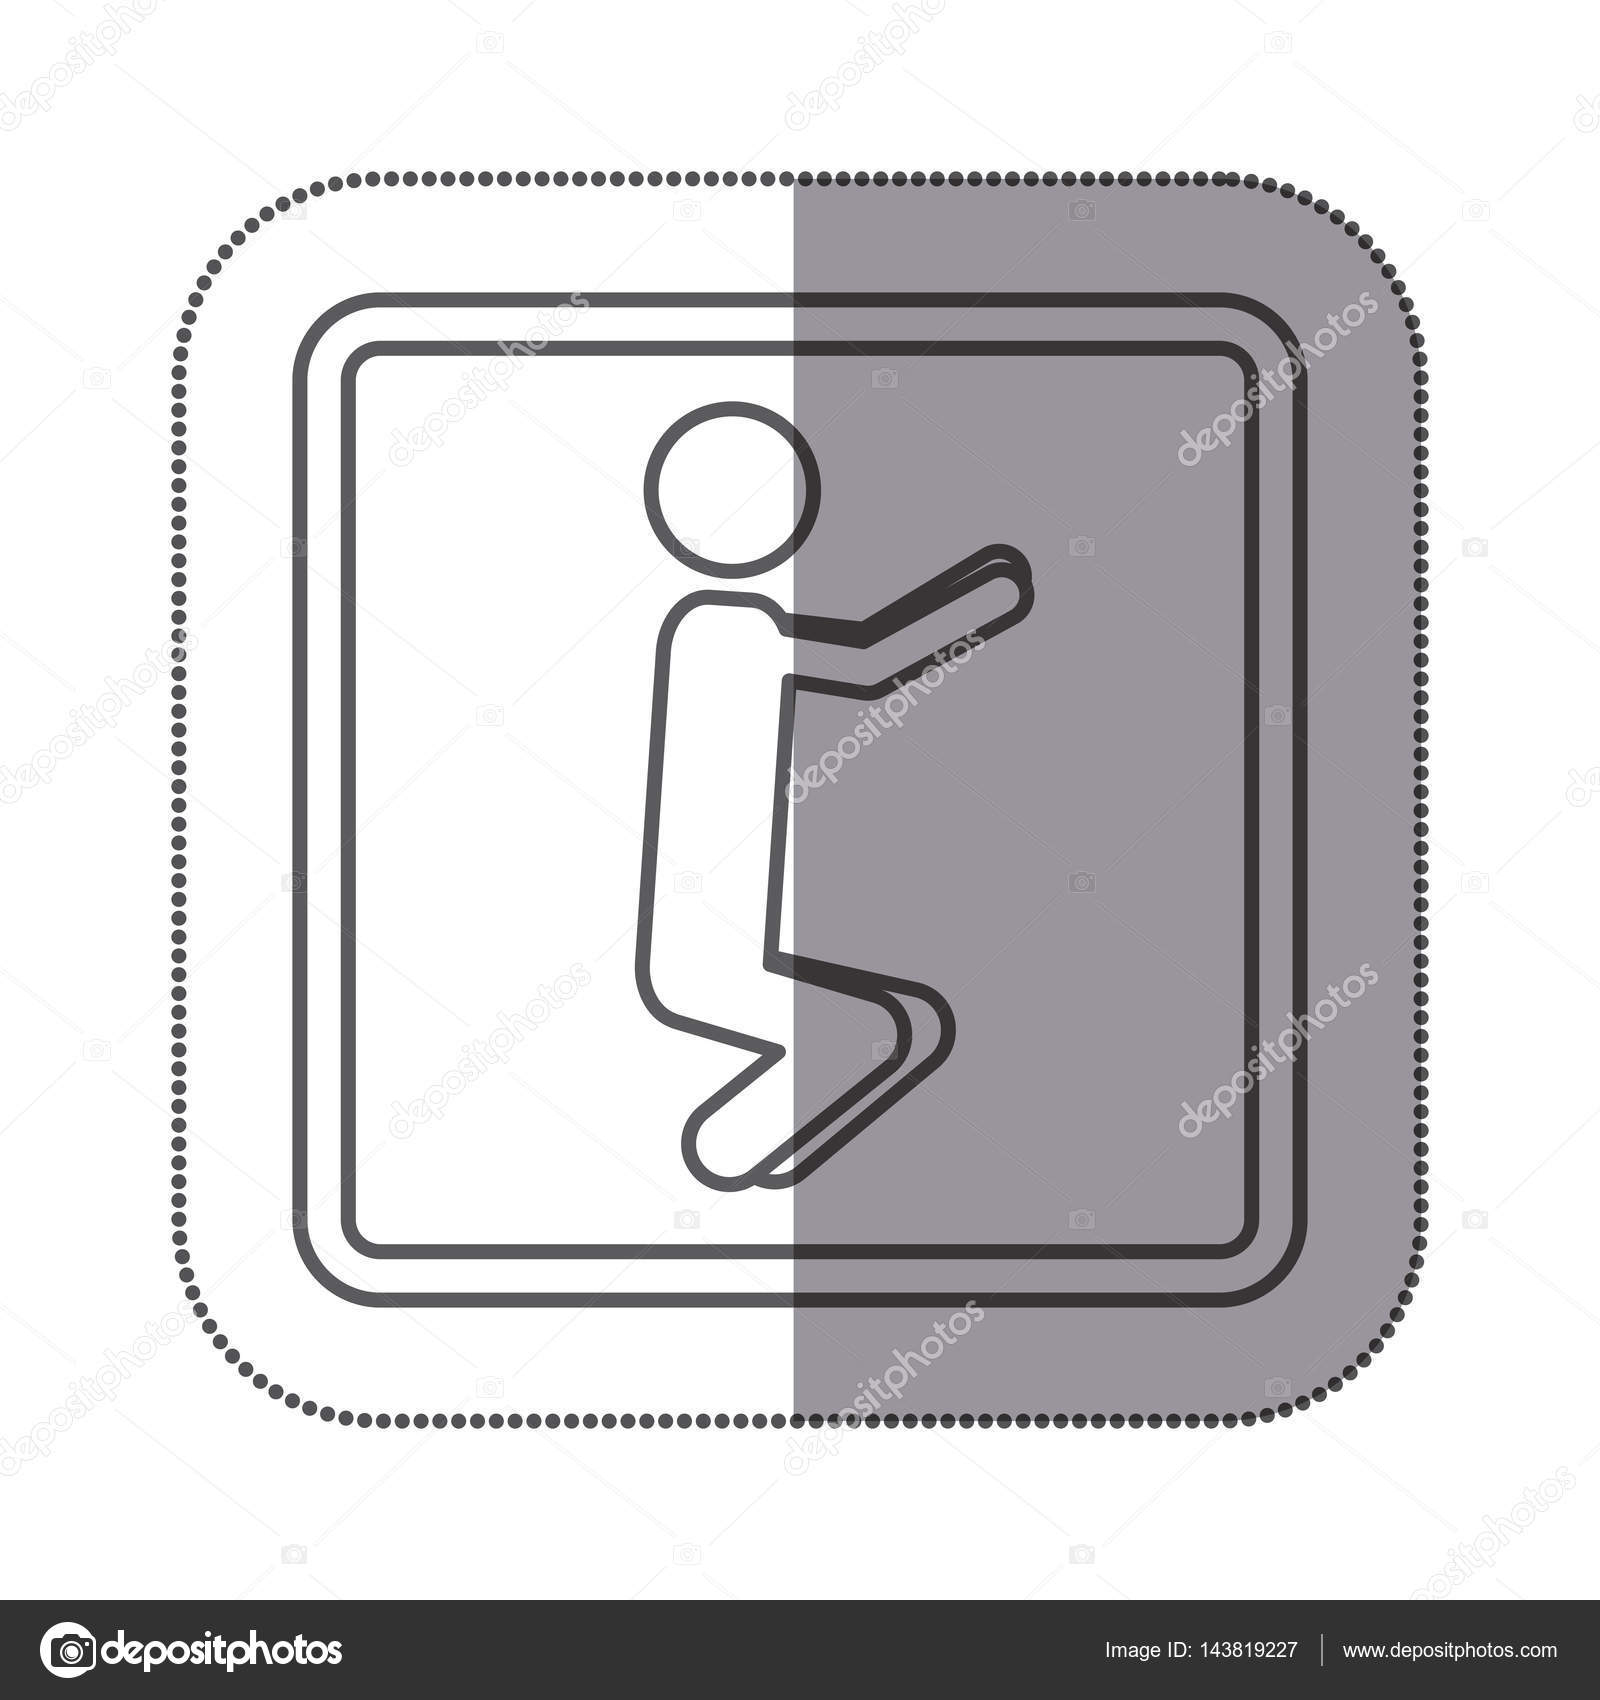 hight resolution of figure person doing squats icon stock vector